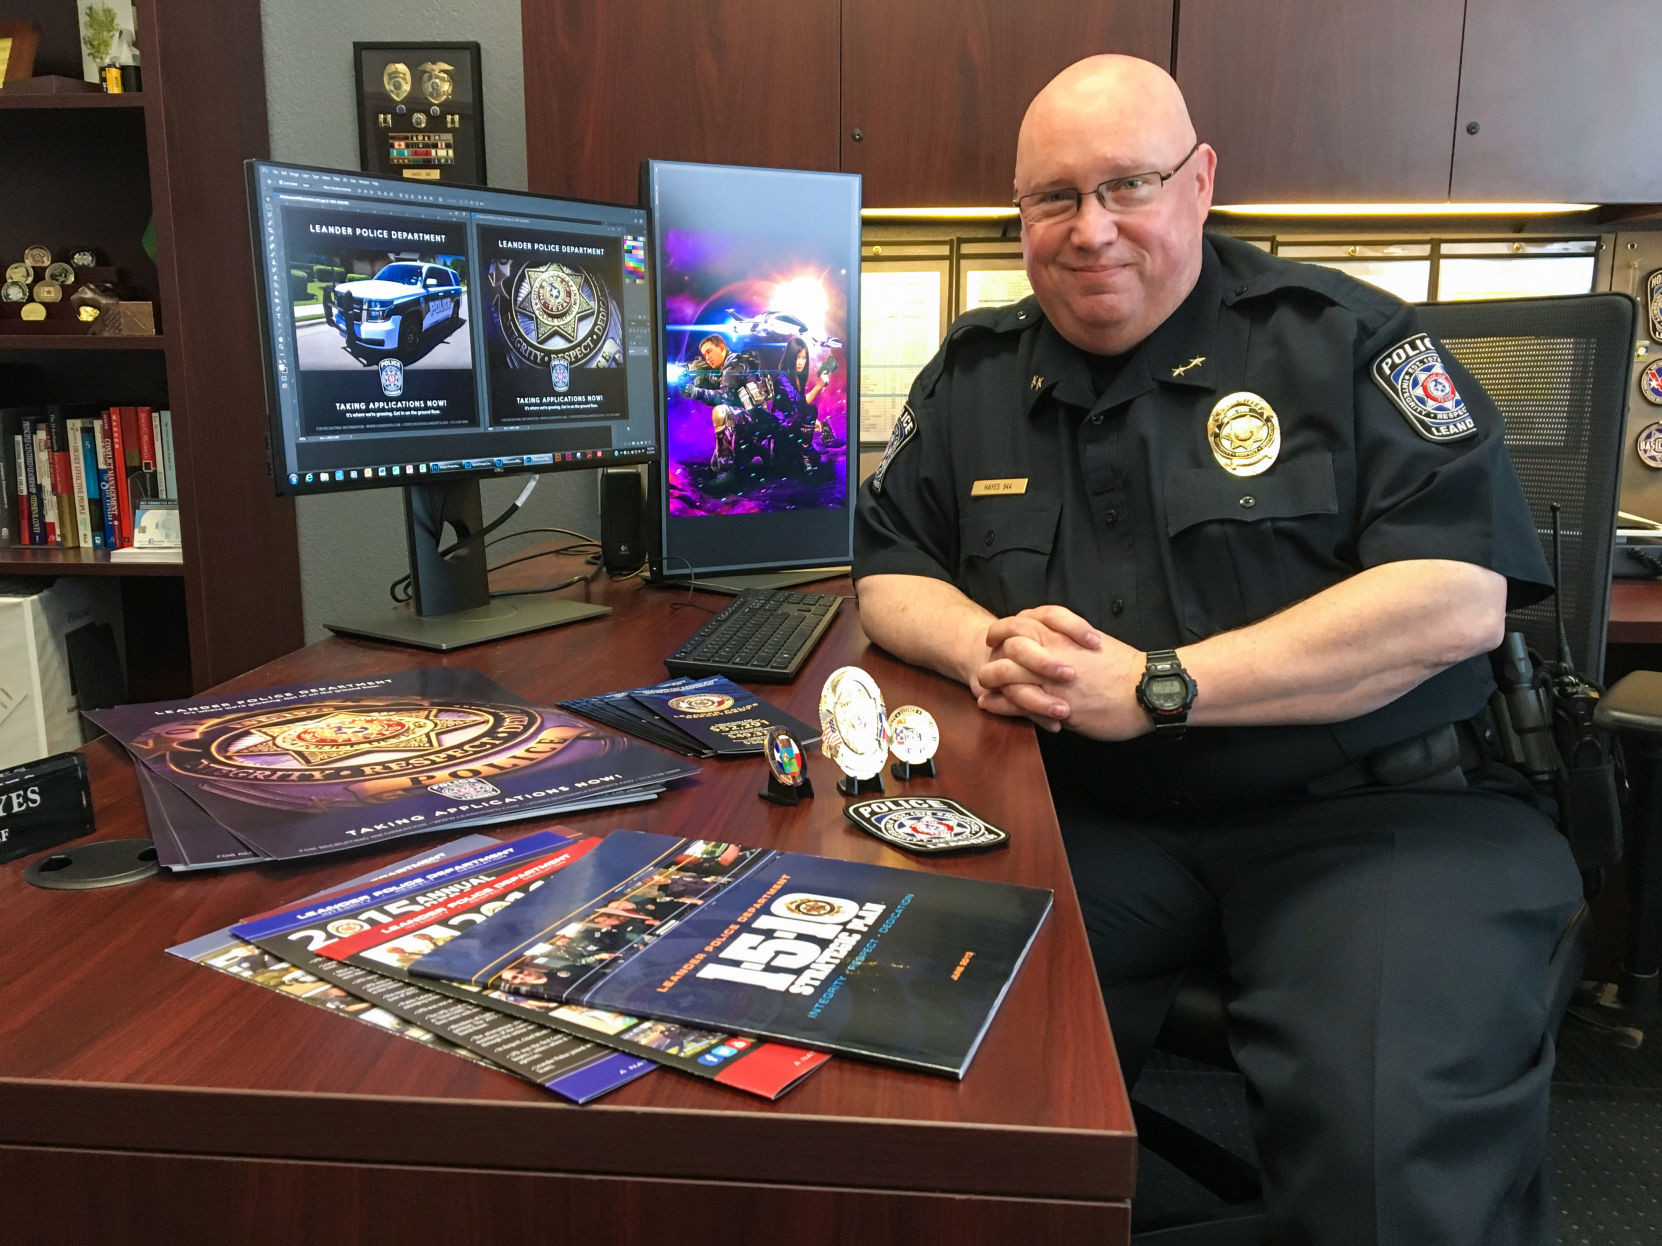 Jeffery Hayes, the Leander assistant chief of police, is also a self taught graphic artist. Hayes has developed an international reputation for his creative designs for posters, book covers and logos.